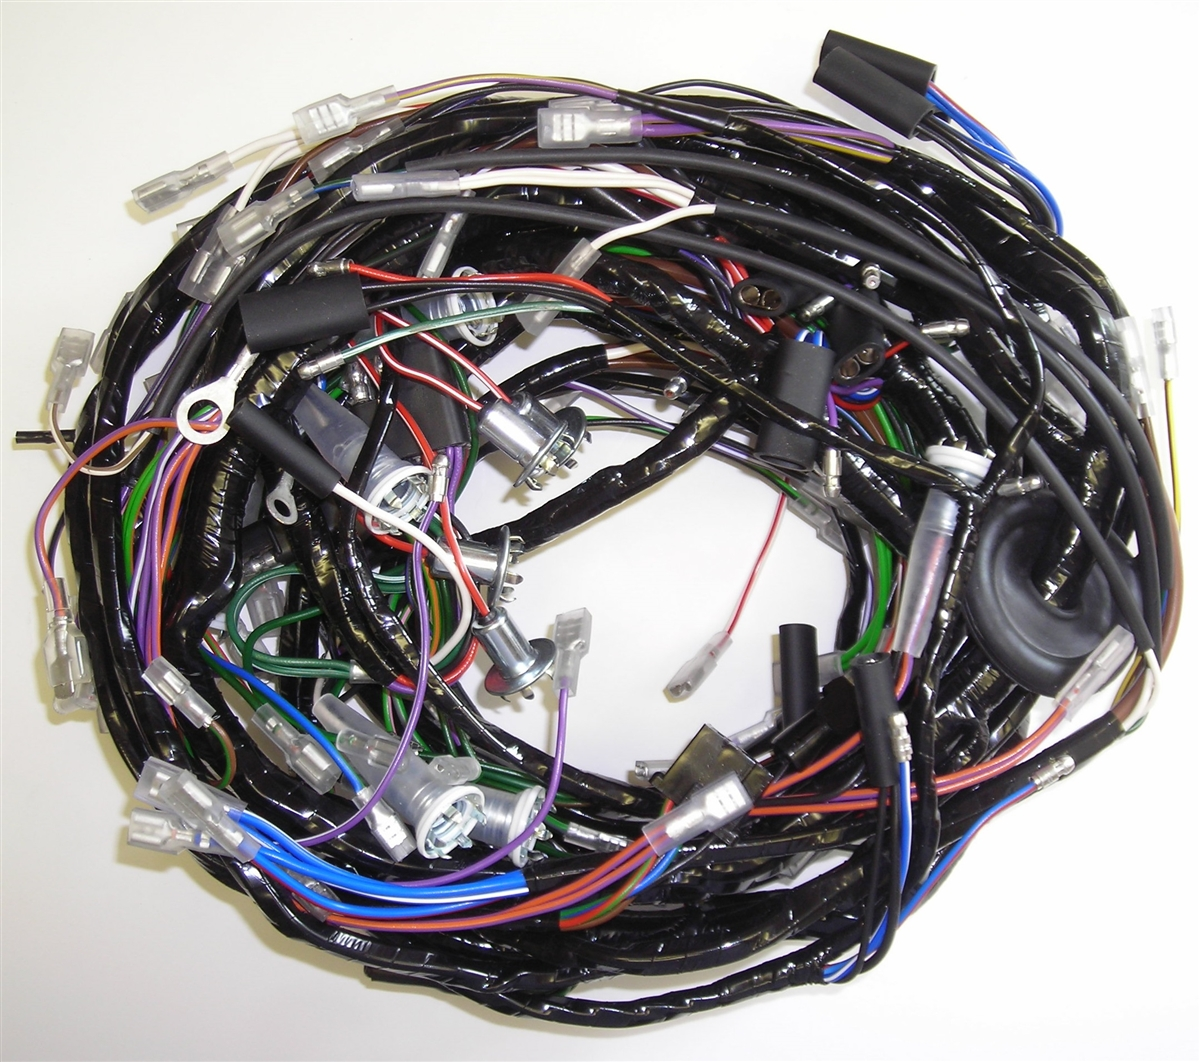 892 2?1337598720 wiring harness triumph tr6 dan masters wiring harness at edmiracle.co